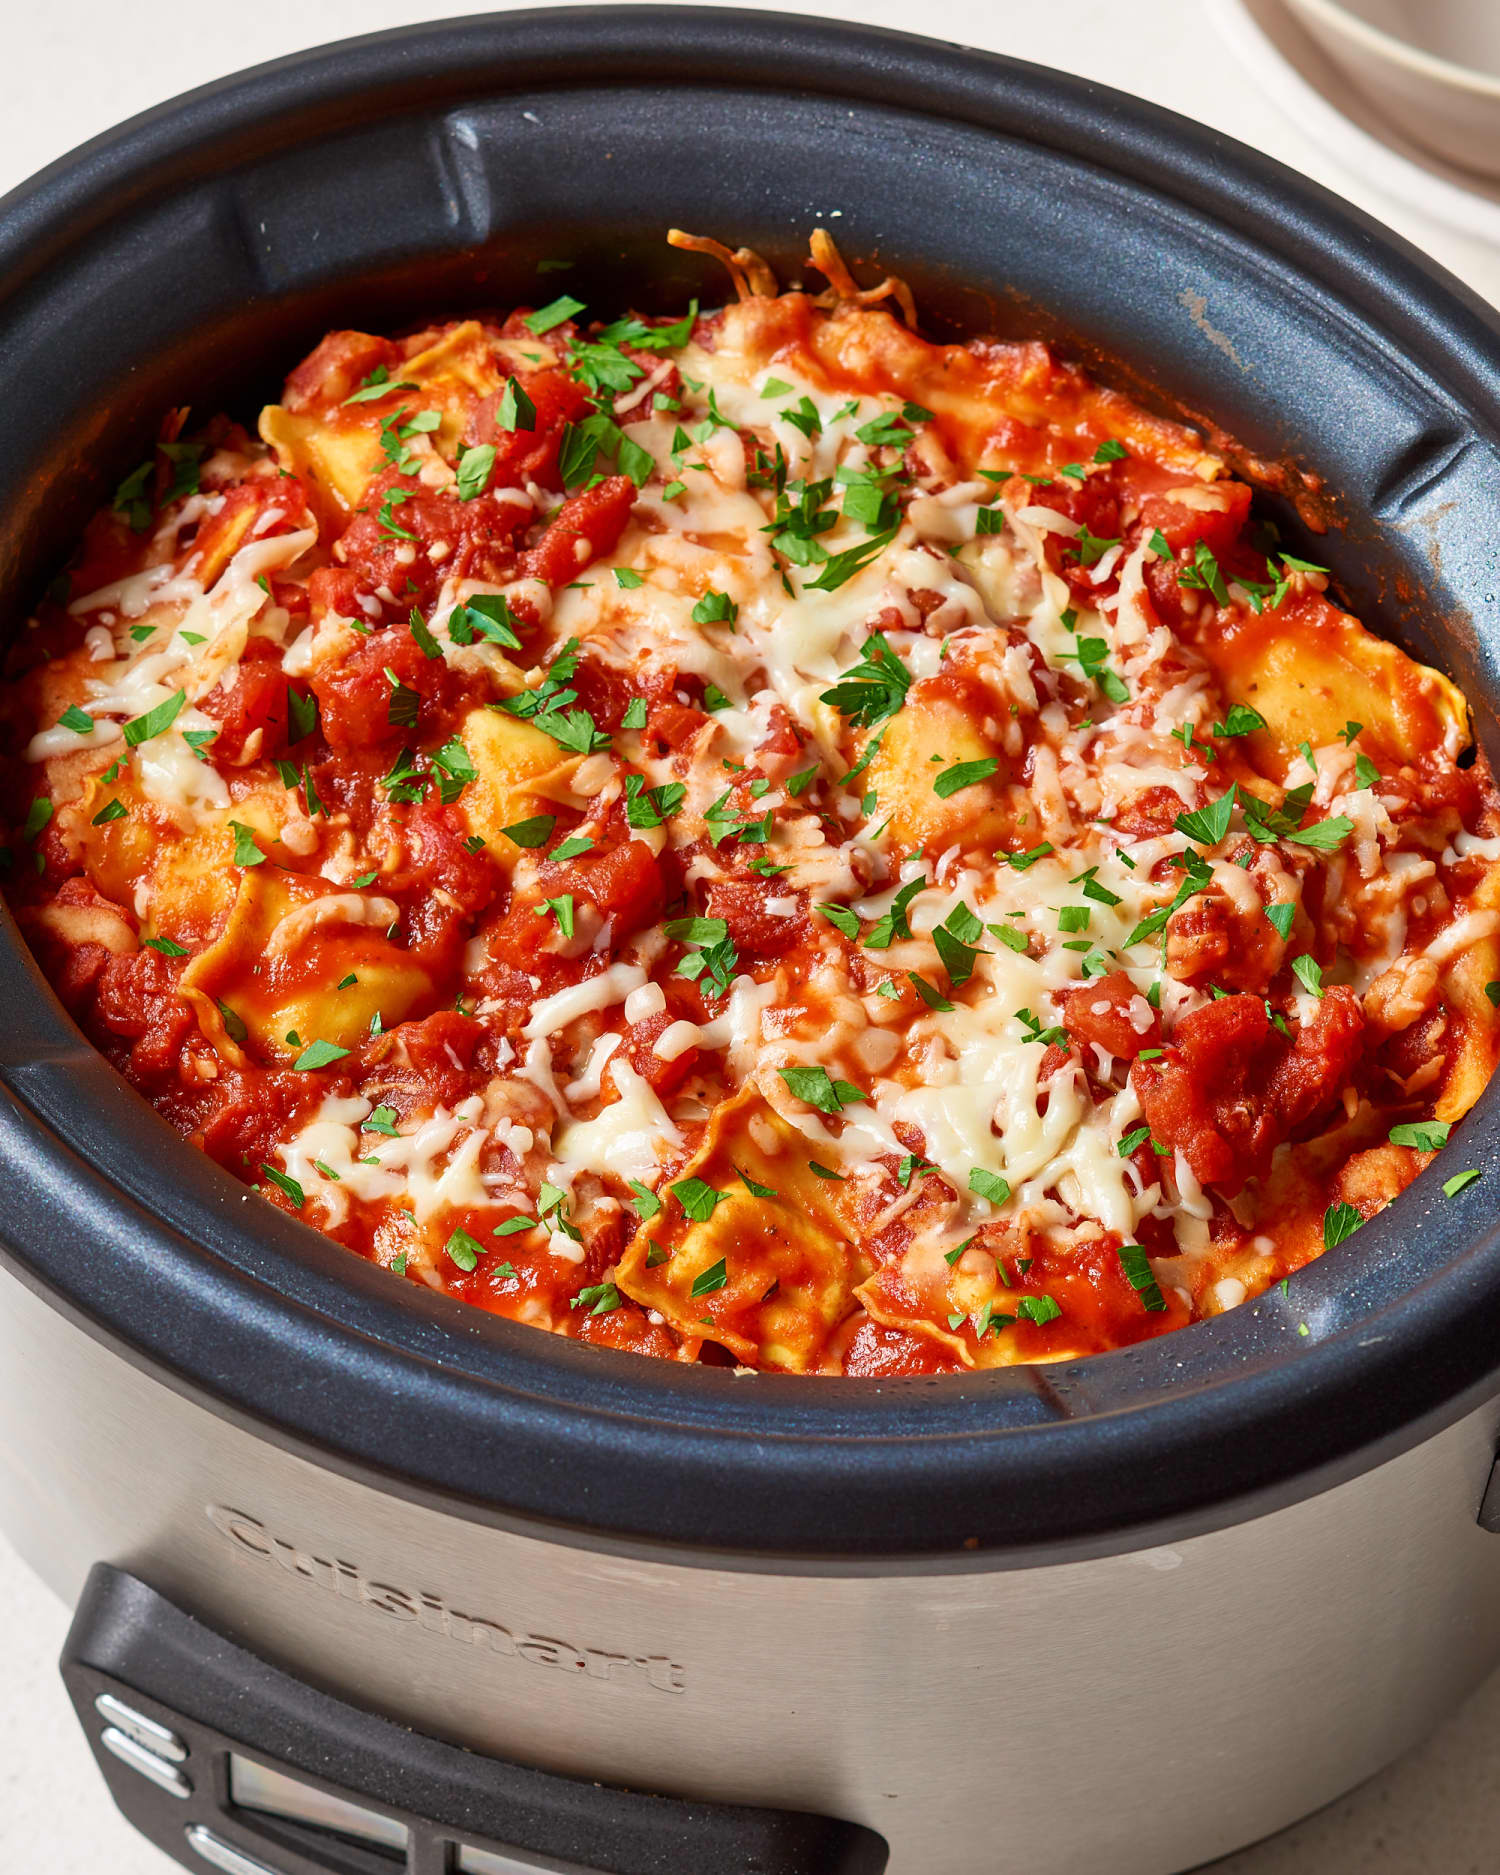 The Best Italian Recipes for Your Slow Cooker